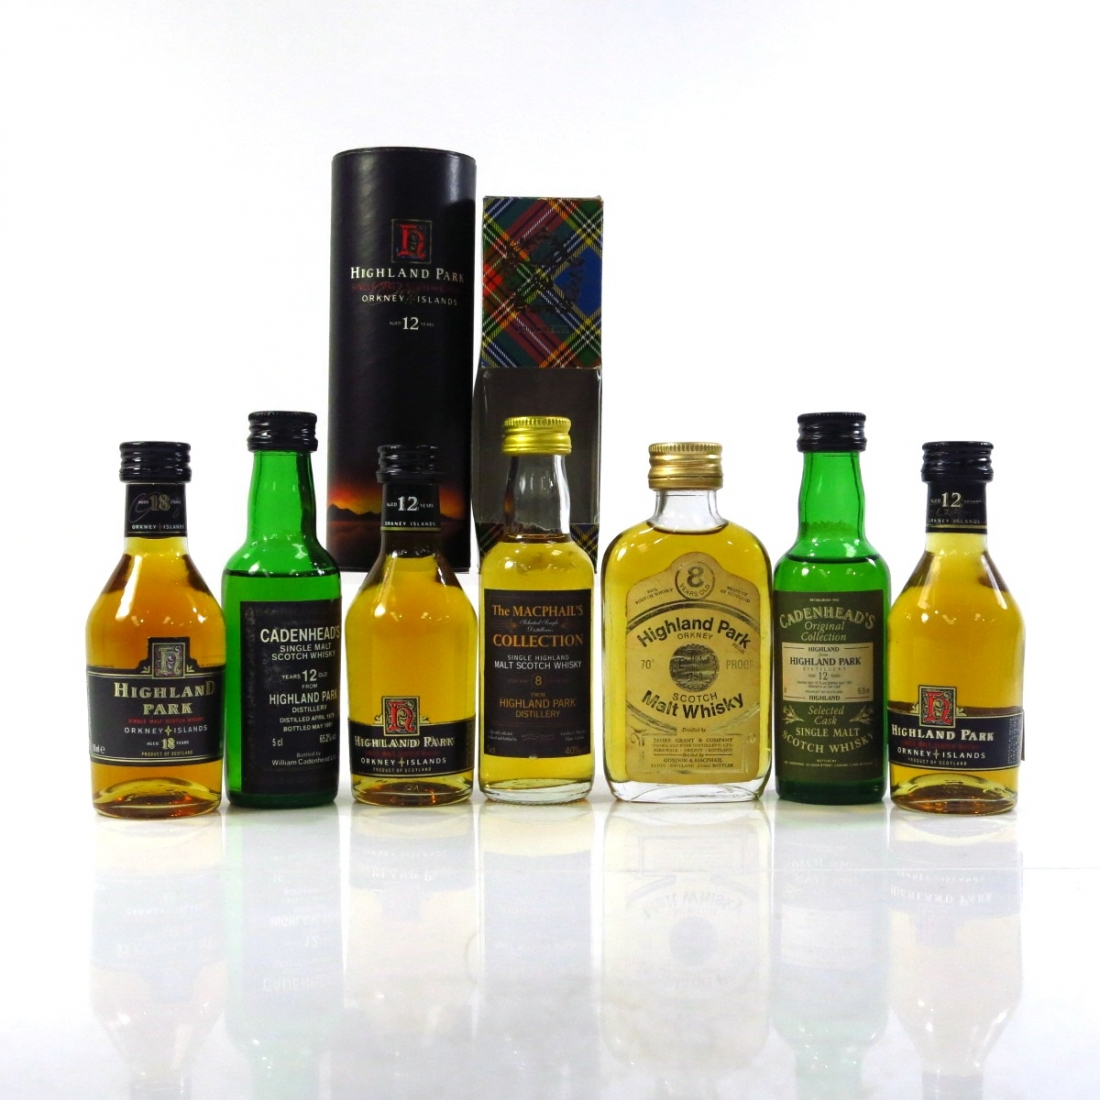 Highland Park Miniature Selection x 7 / includes 18 Year Old